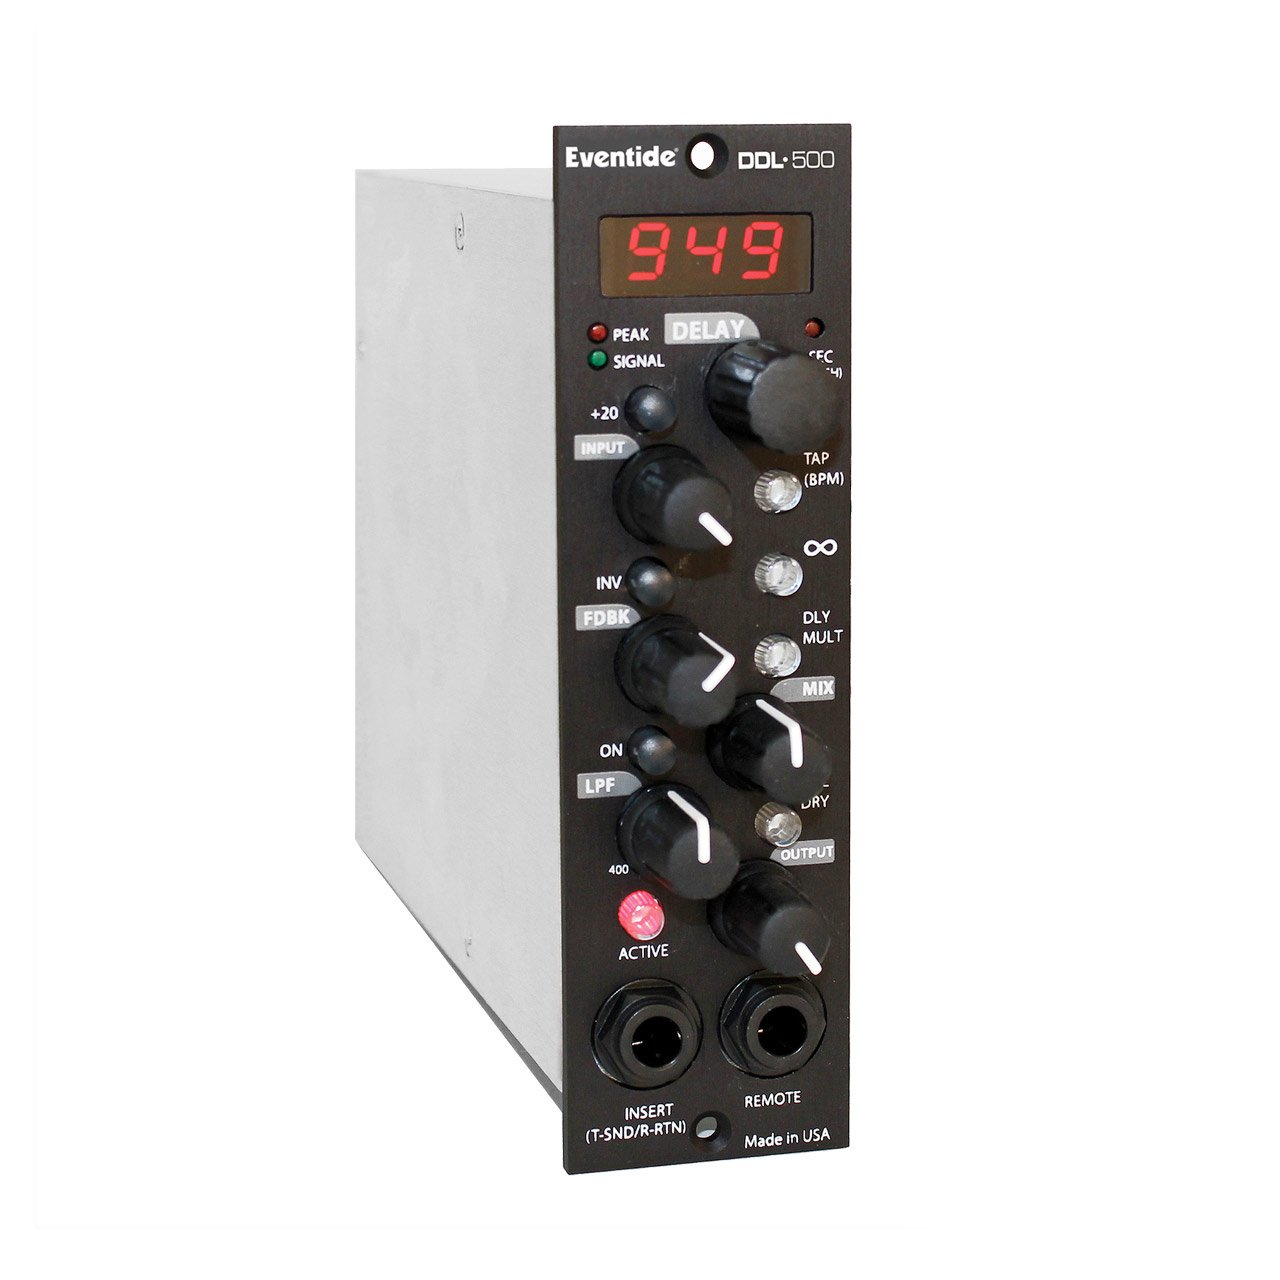 500 Series - Eventide DDL-500 - Delay Module For 500 Series